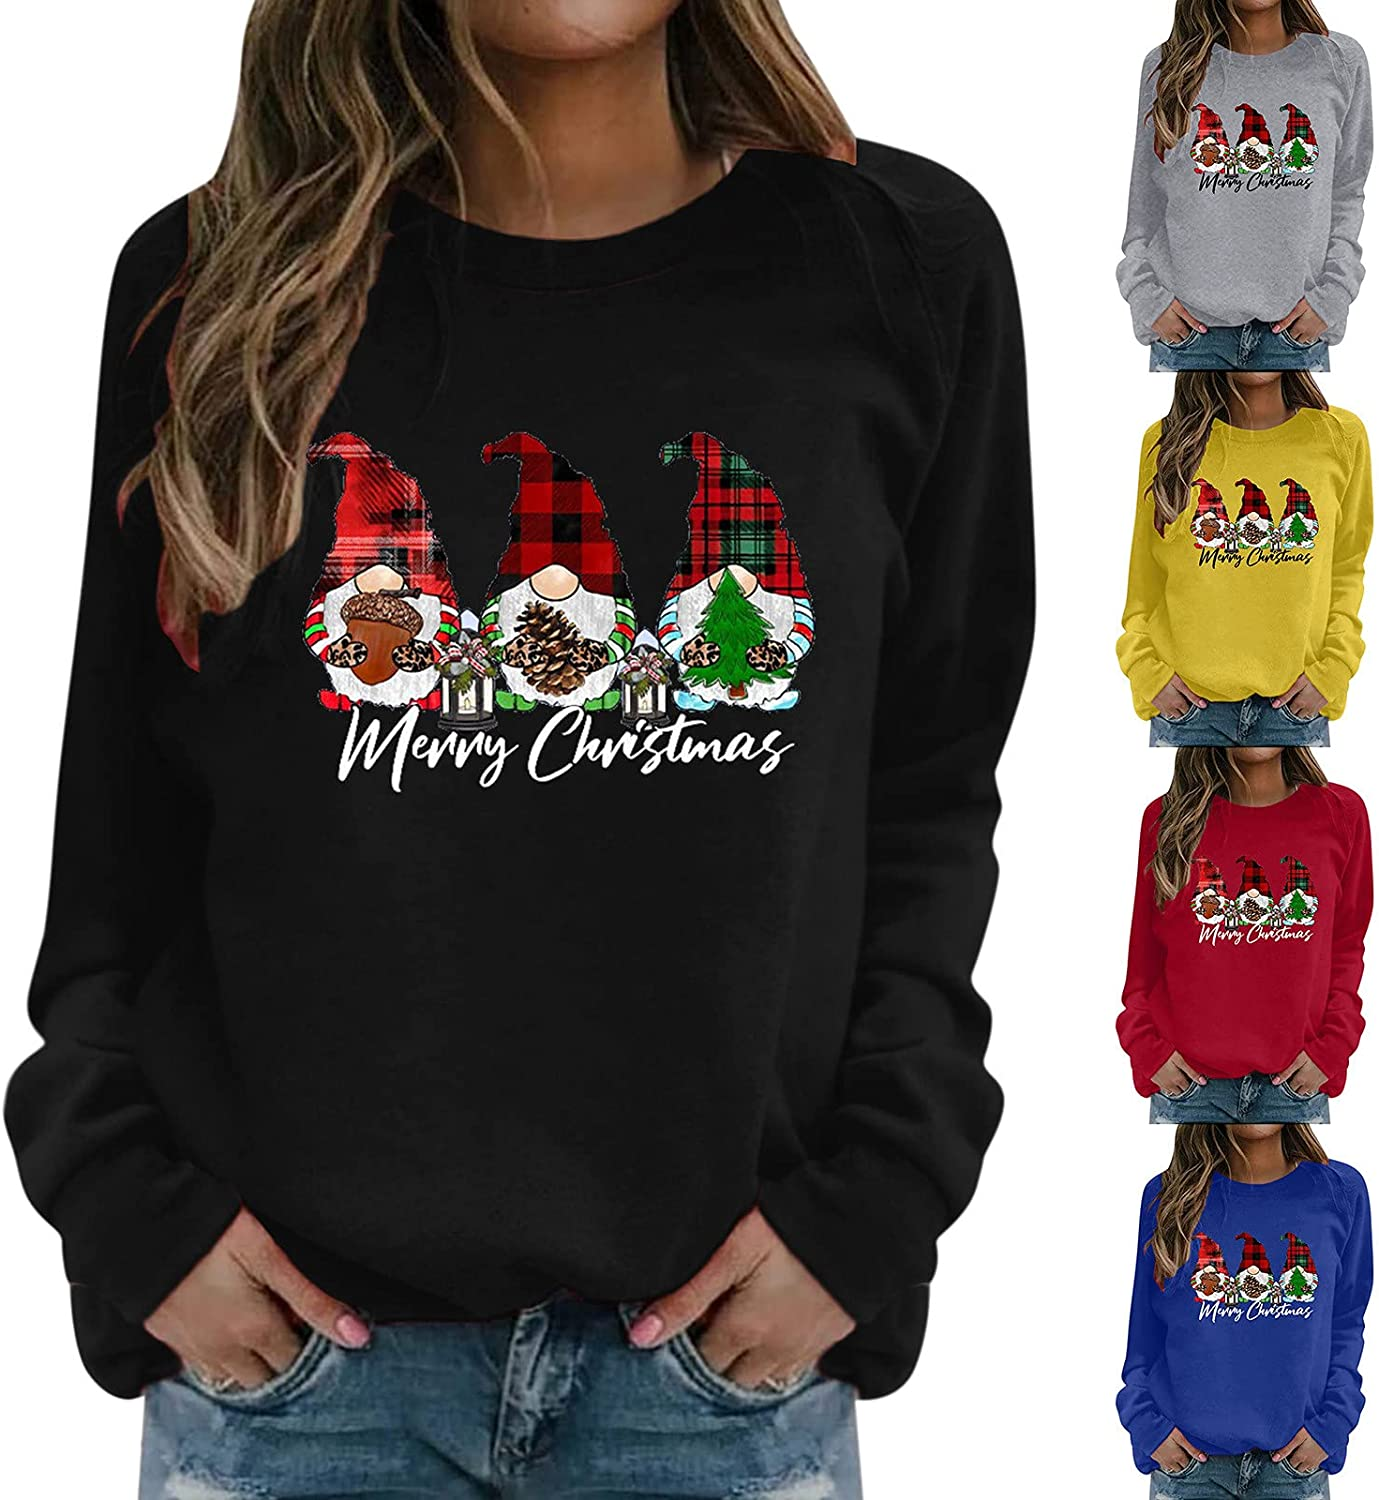 Christmas Gnome Shirts for Women Plus Size Crewneck Pullover Graphic Tshirt Casual Holiday Sweatshirts Fall Tops